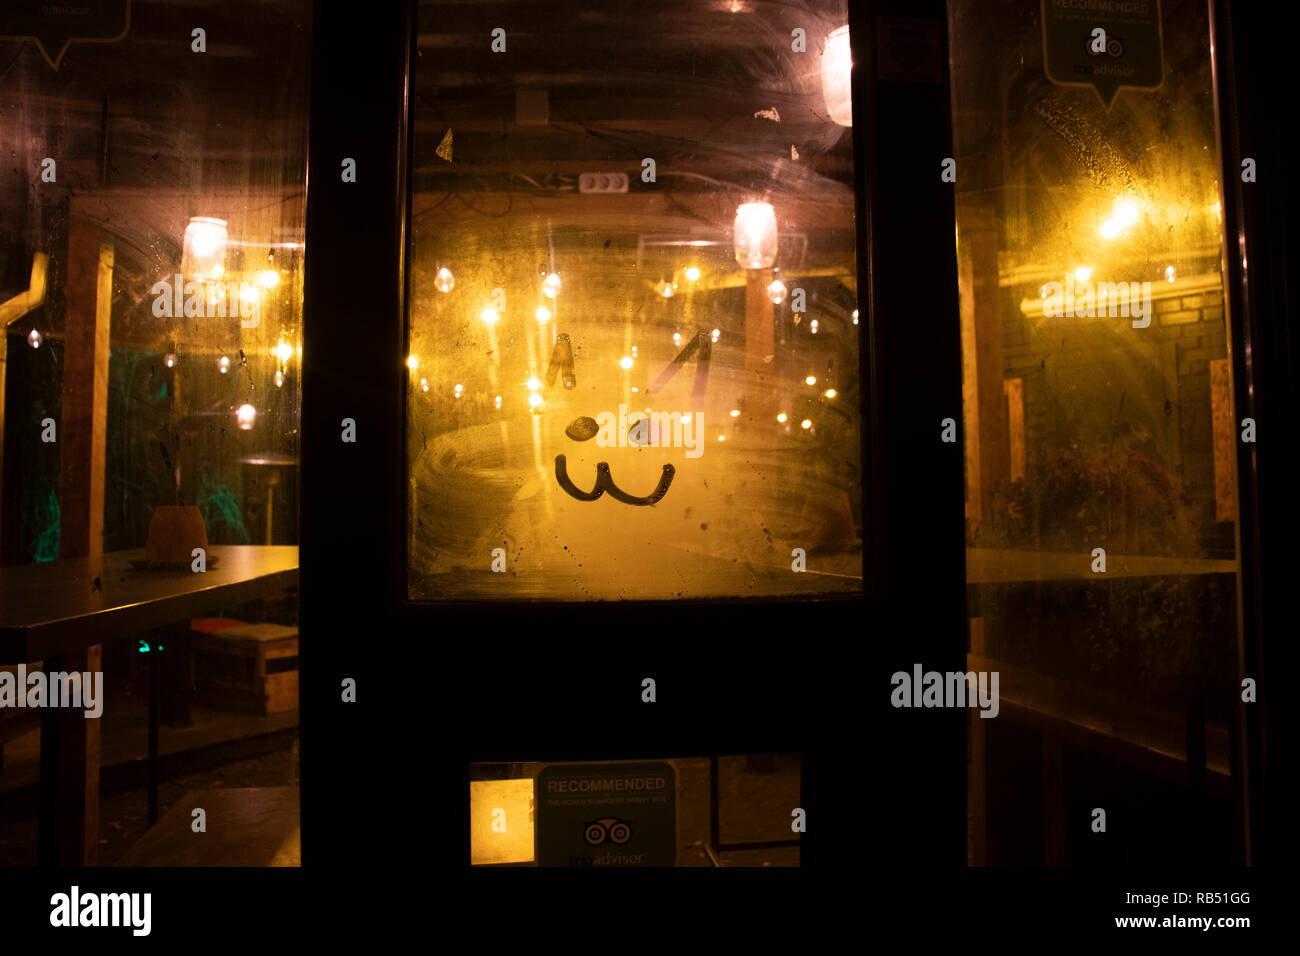 A welcoming entrance to restaurant - Stock Image